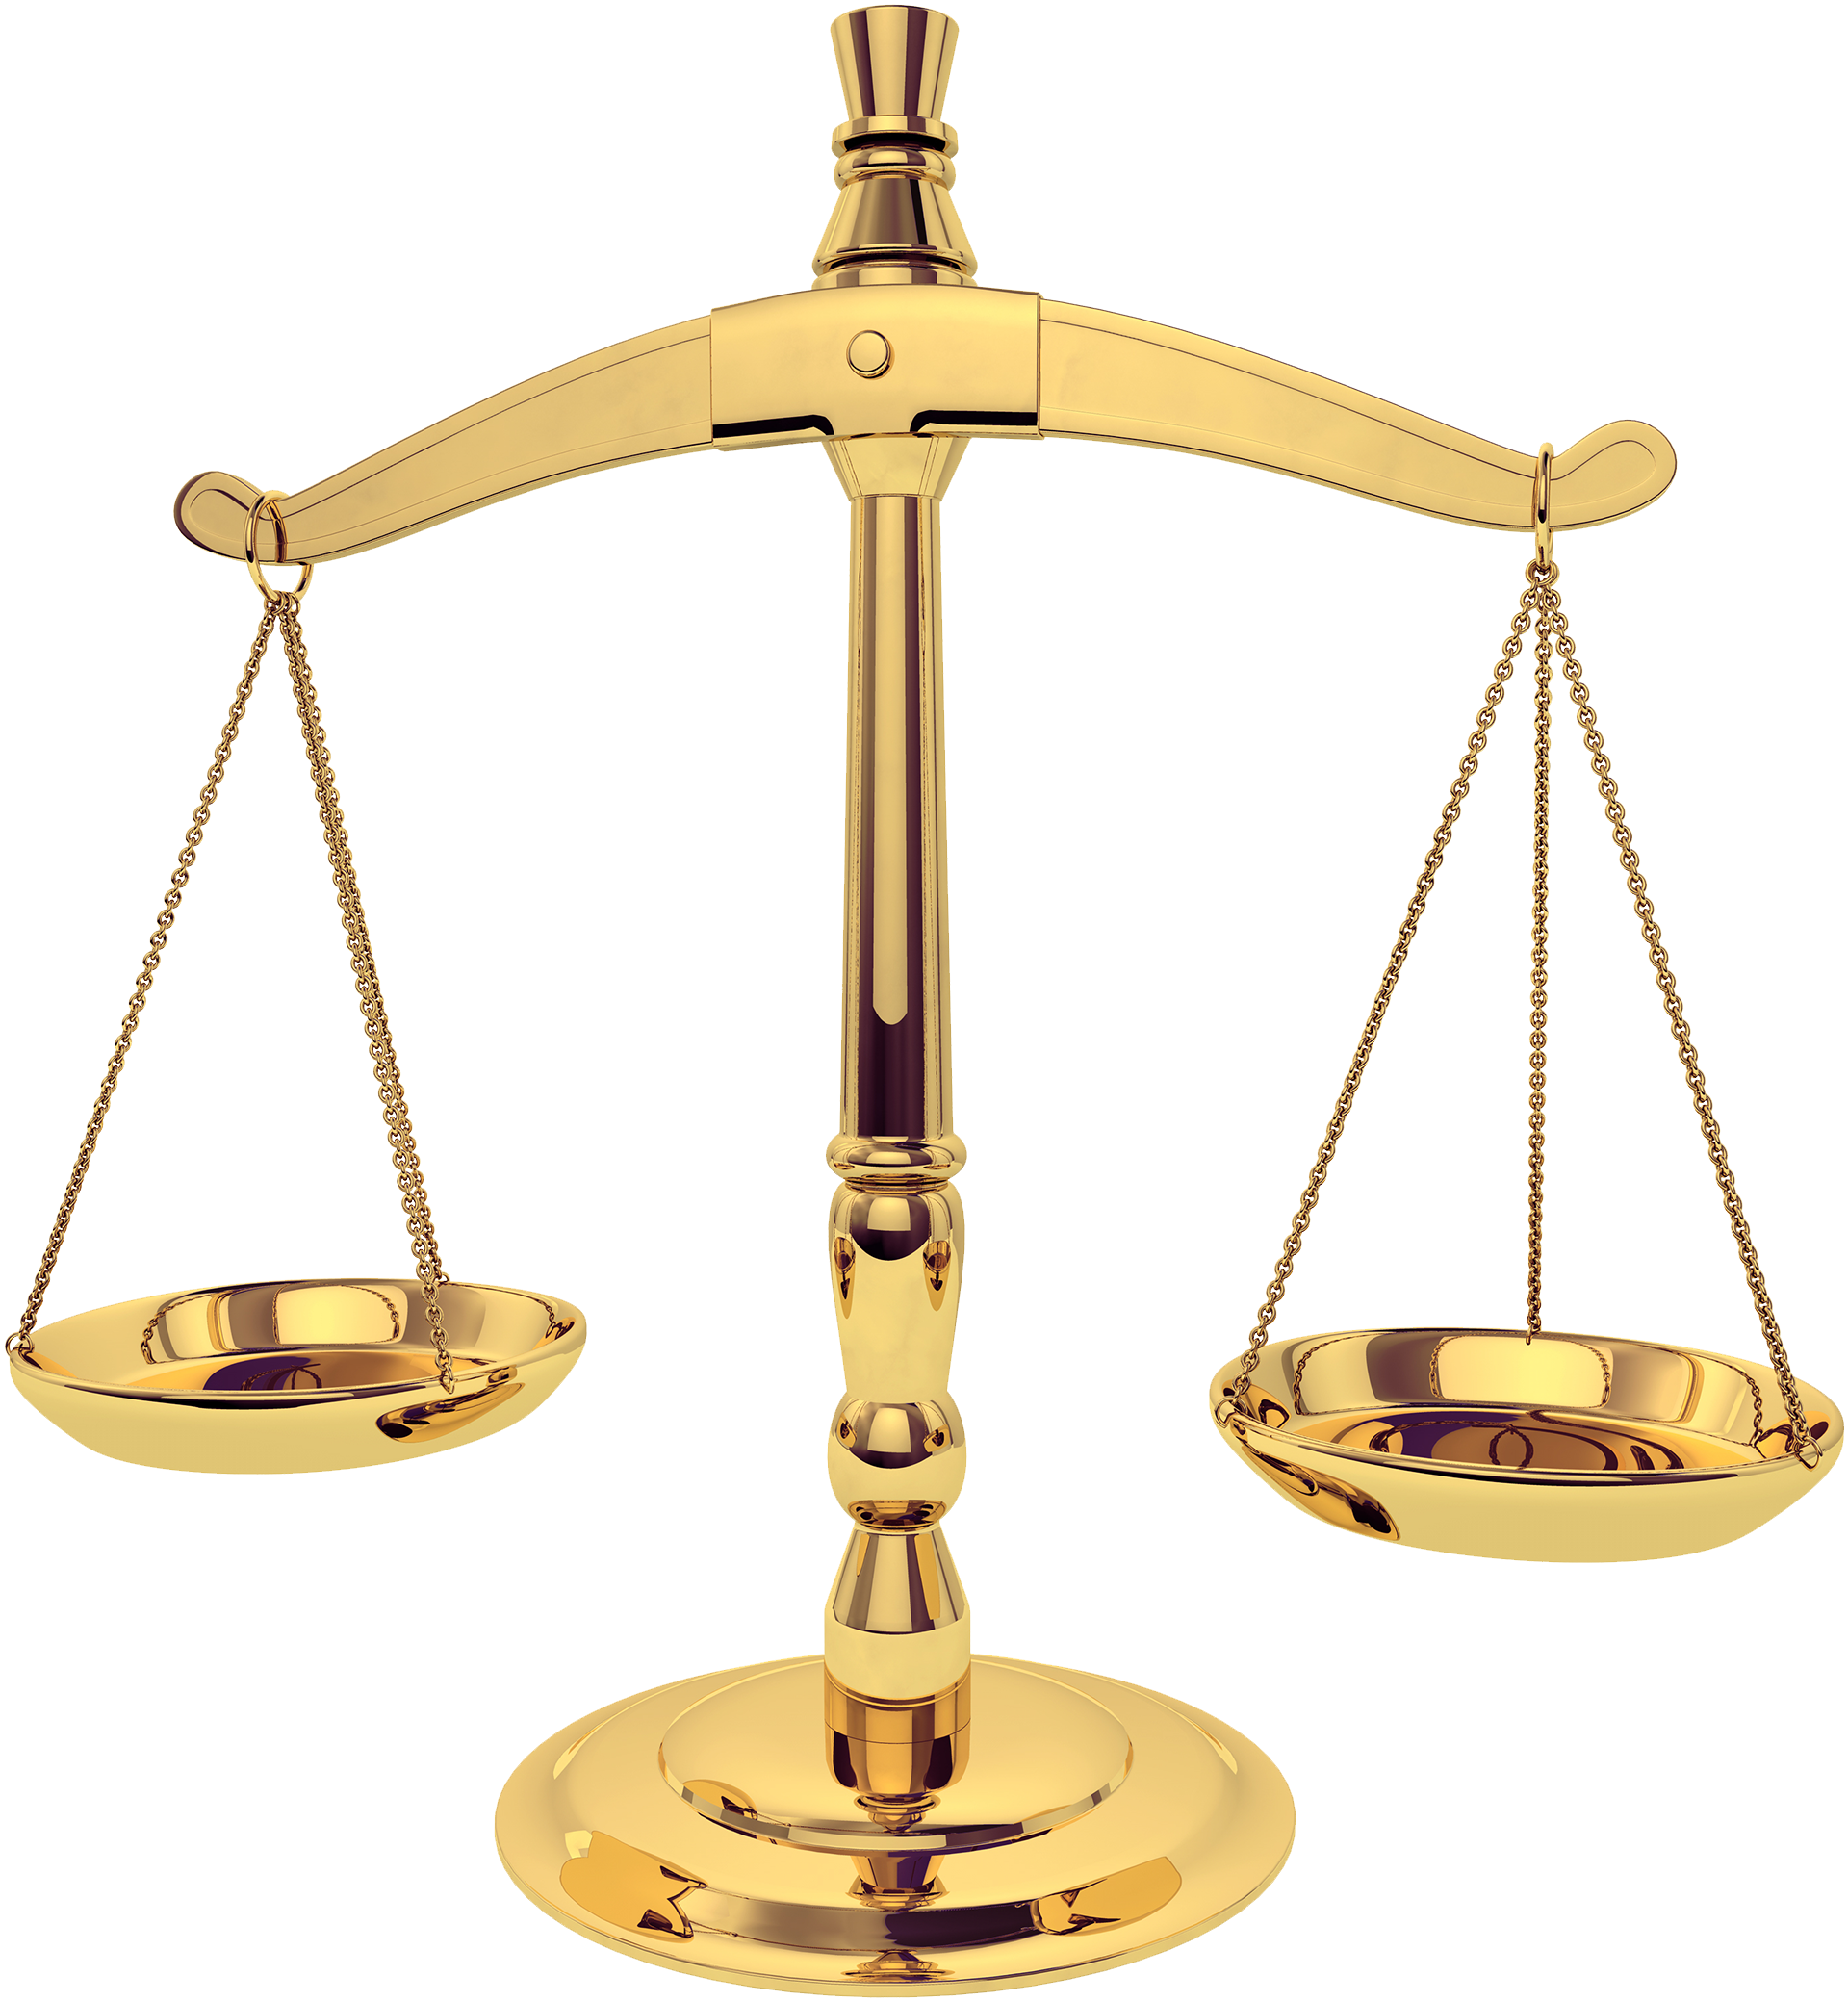 Golden Scales - JUSTICE (TRUTH FACTS EVIDENCE PROOF) EQUALITY FAIRNESS PLURALISM